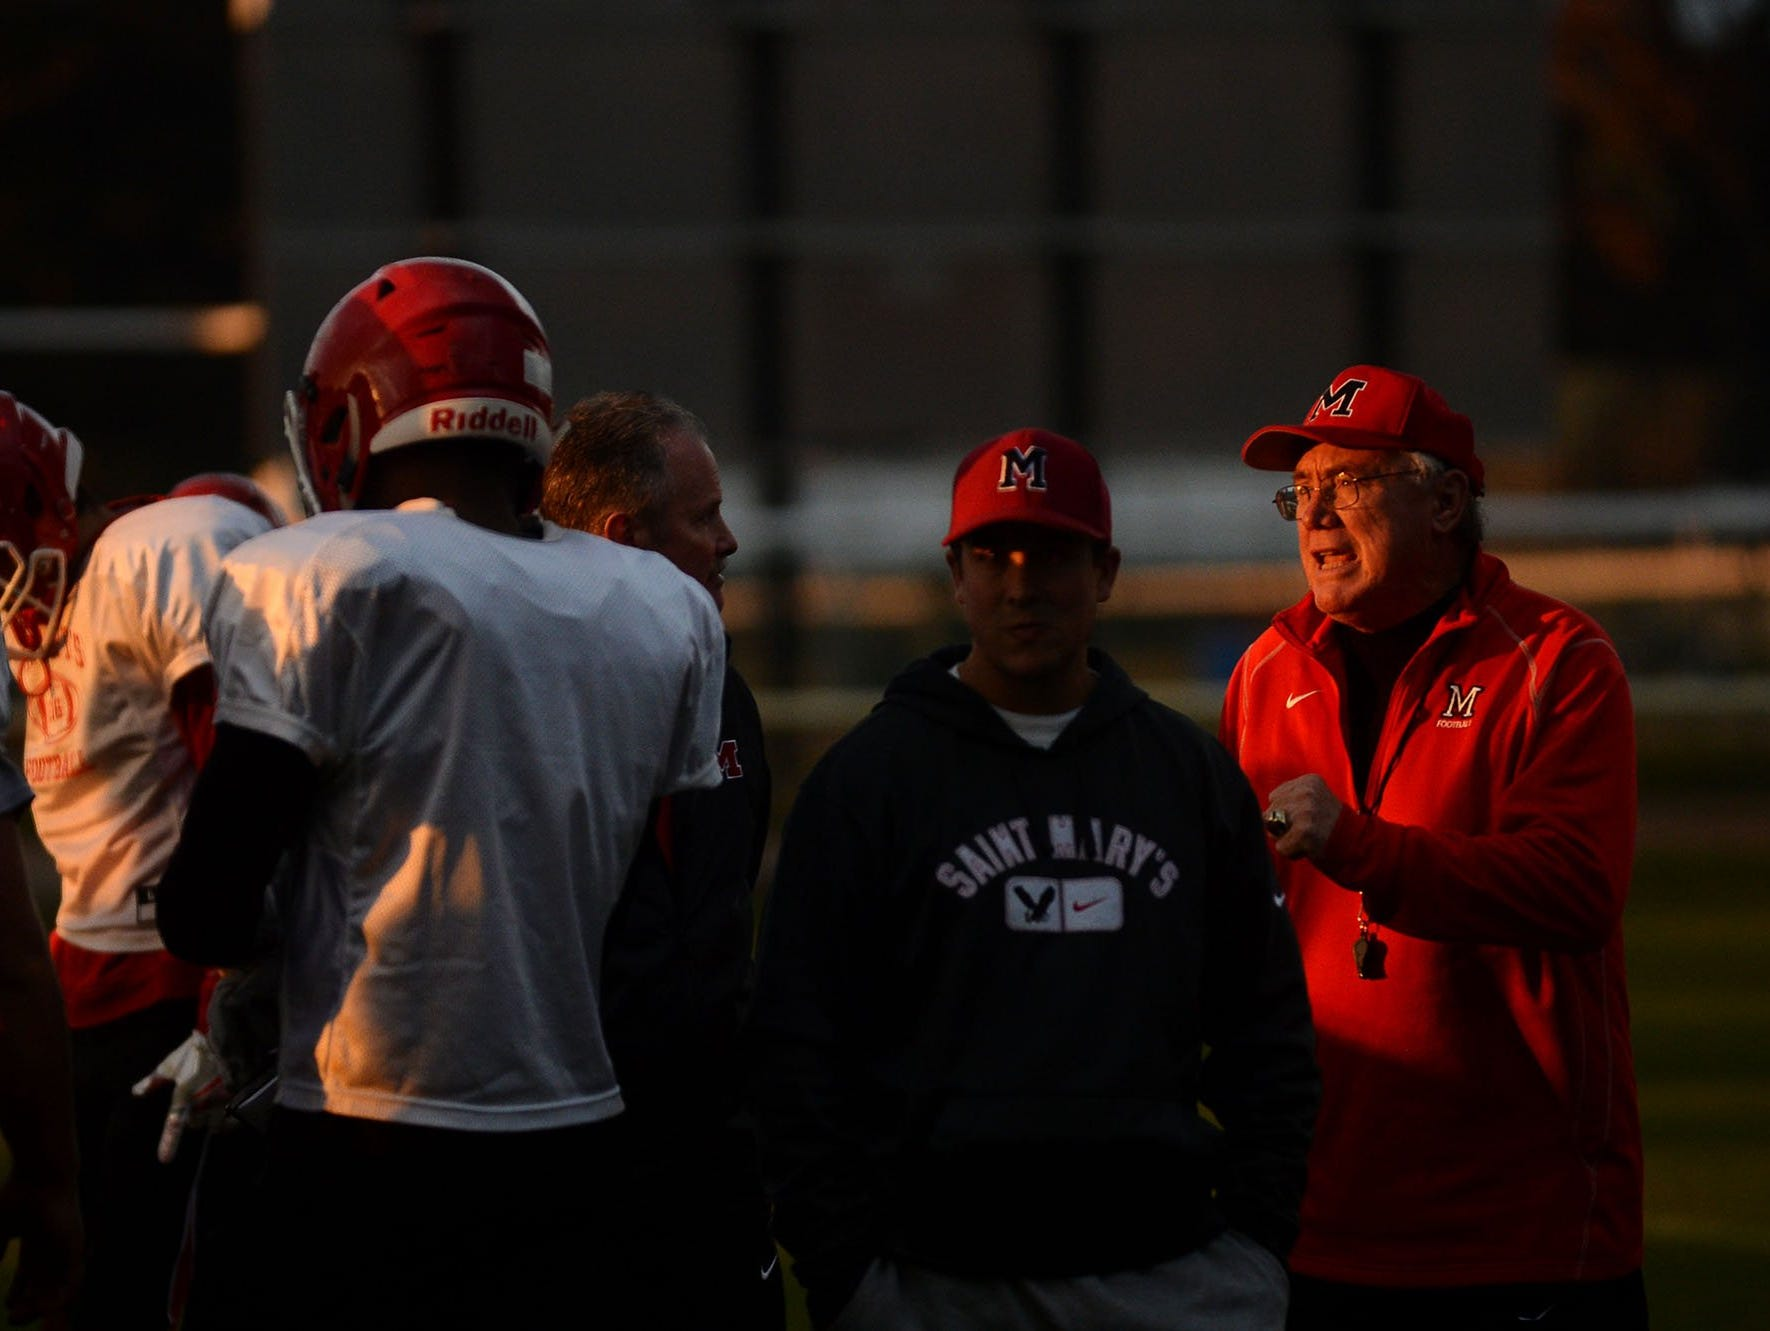 Orchard Lake St. Mary's football head coach George Porritt, right, talks to players and fellow coaches during practice on Tuesday, Nov. 8, 2016 at Orchard Lake St. Mary's.